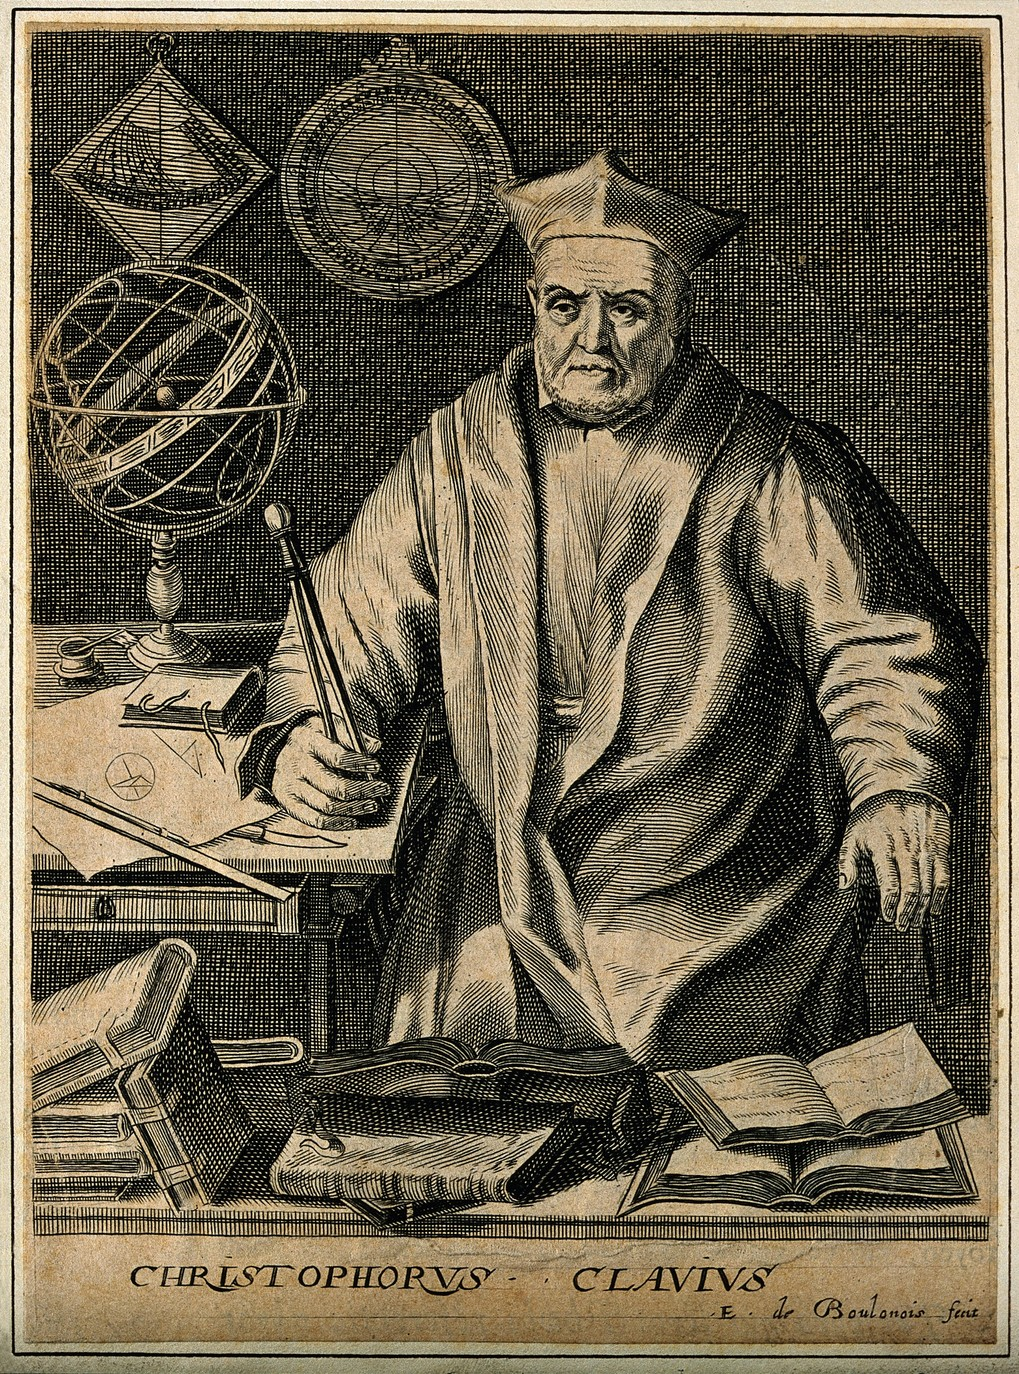 V0001150 Christopher Clavius. Line engraving by E. de Boulonois.